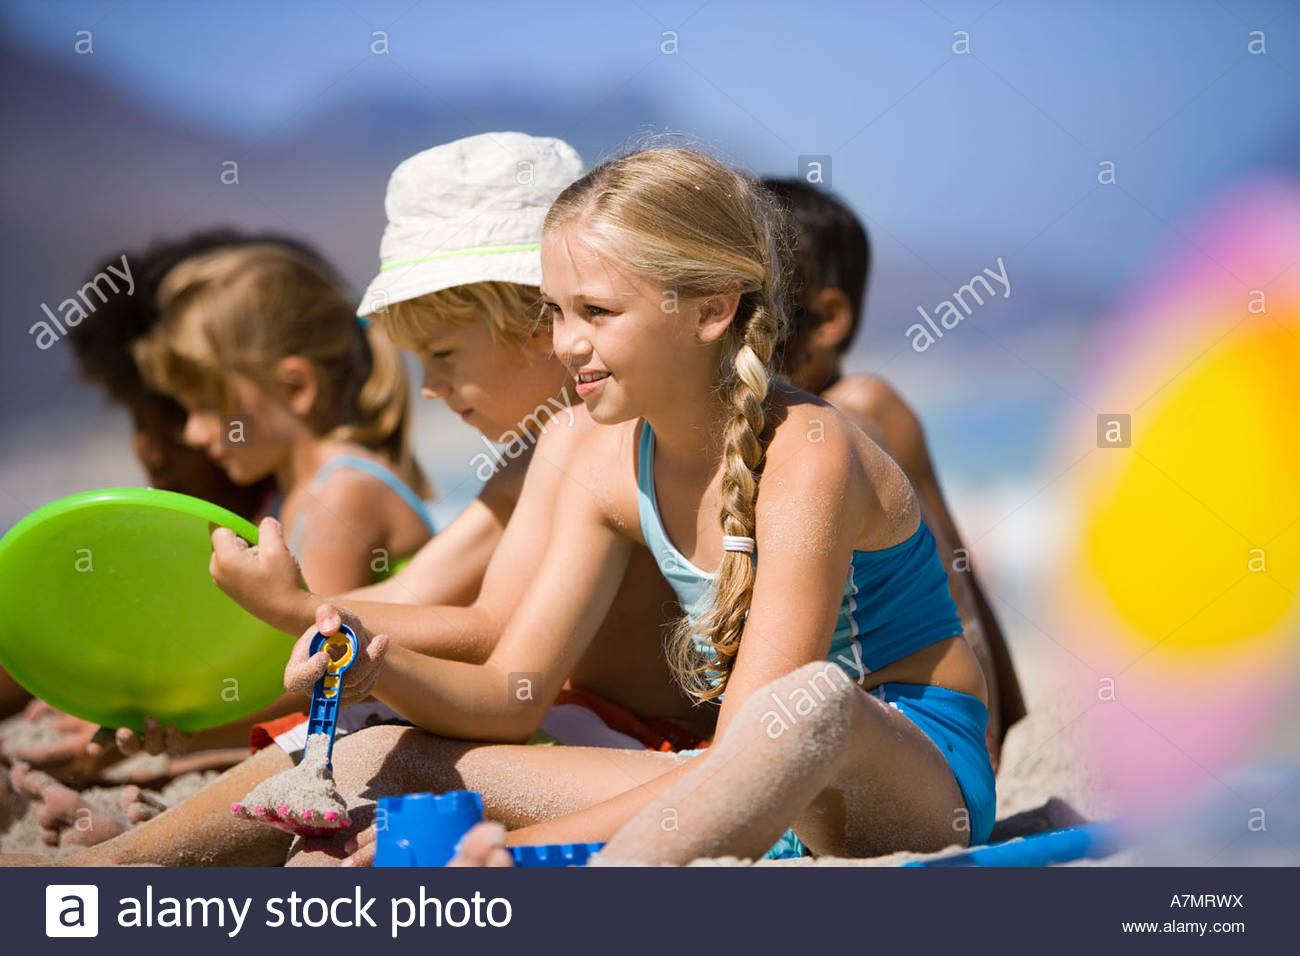 49 Enfants assis en ligne sur beach smiling side view differential focus Photo Stock